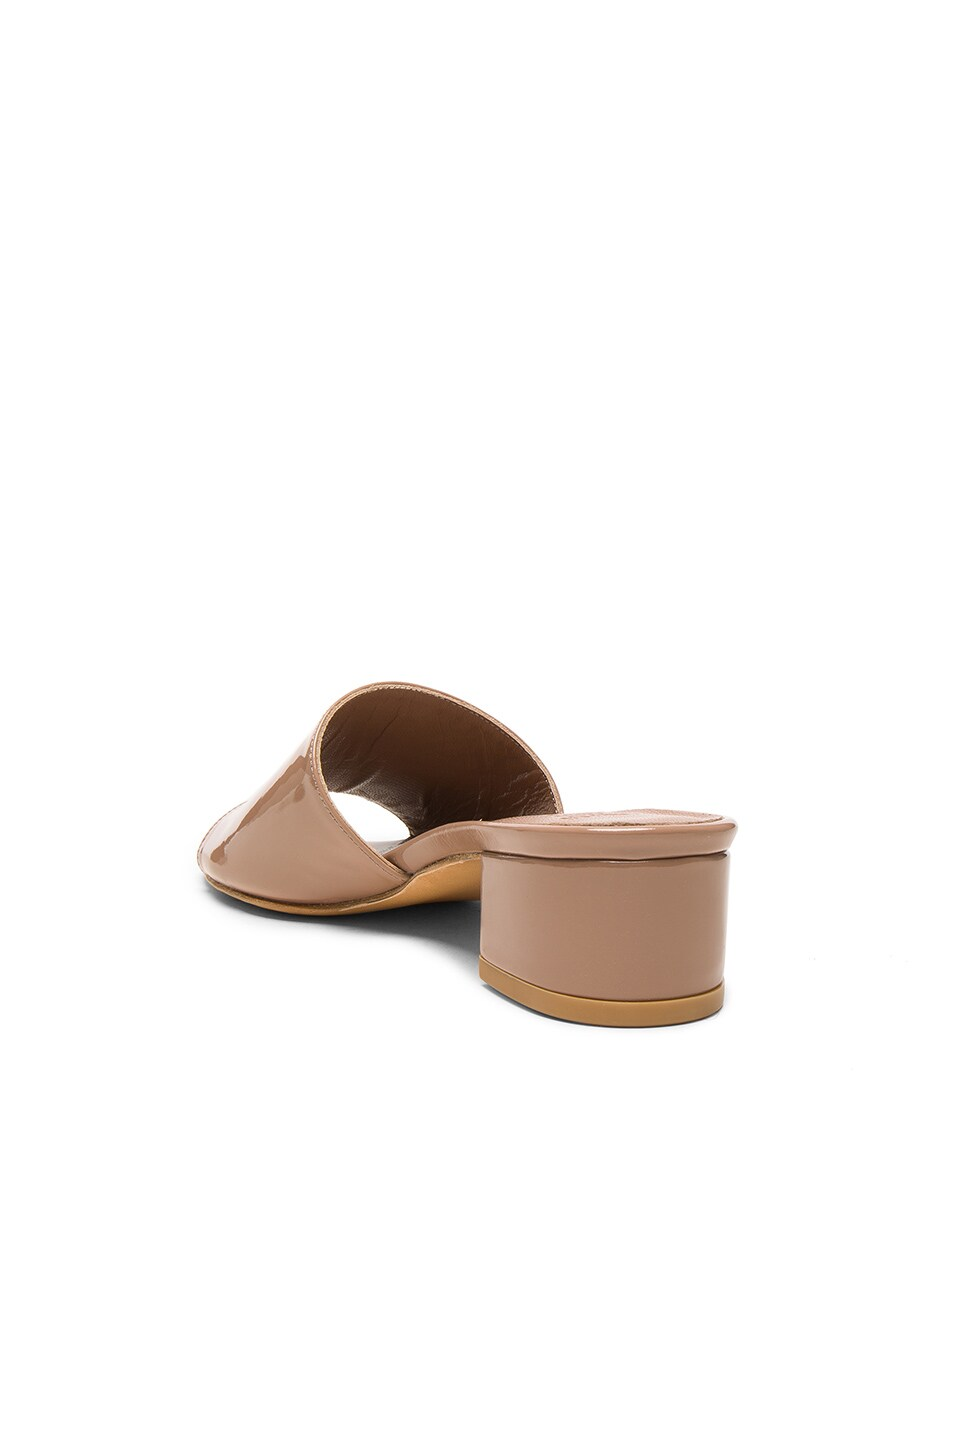 Image 3 of Maryam Nassir Zadeh Patent Leather Sophie Slide Heels in Taupe Patent